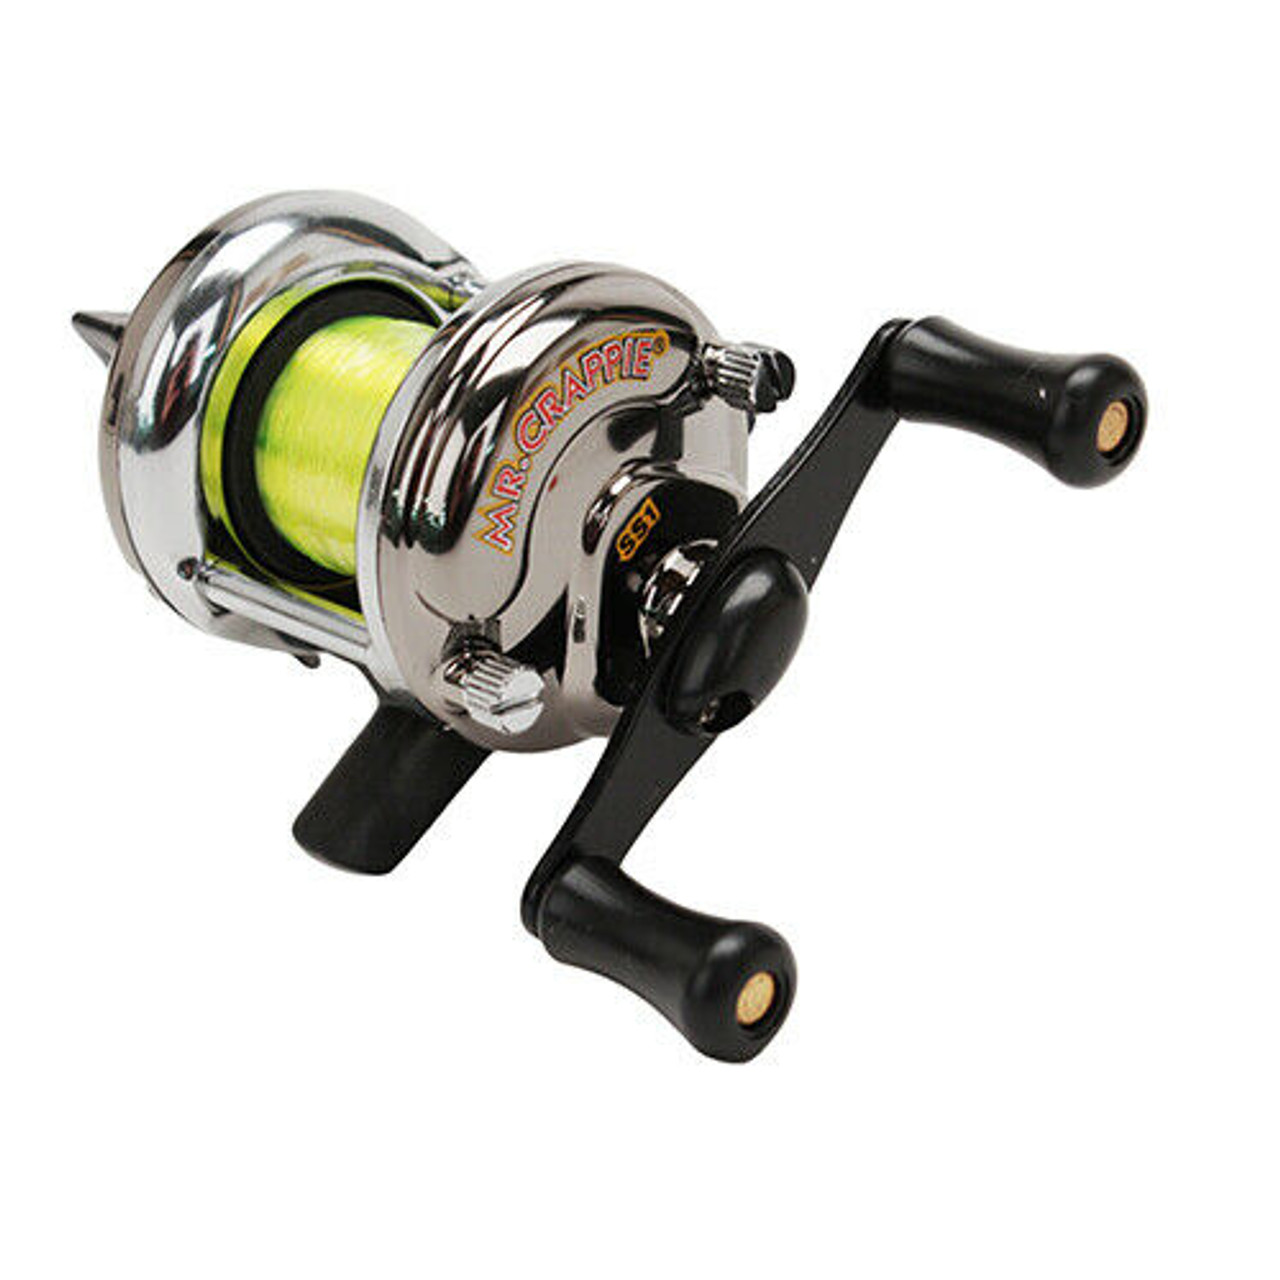 Mr. Crappie Slab Shaker Crappie Reel Pre-spooled With Premium Line SS1